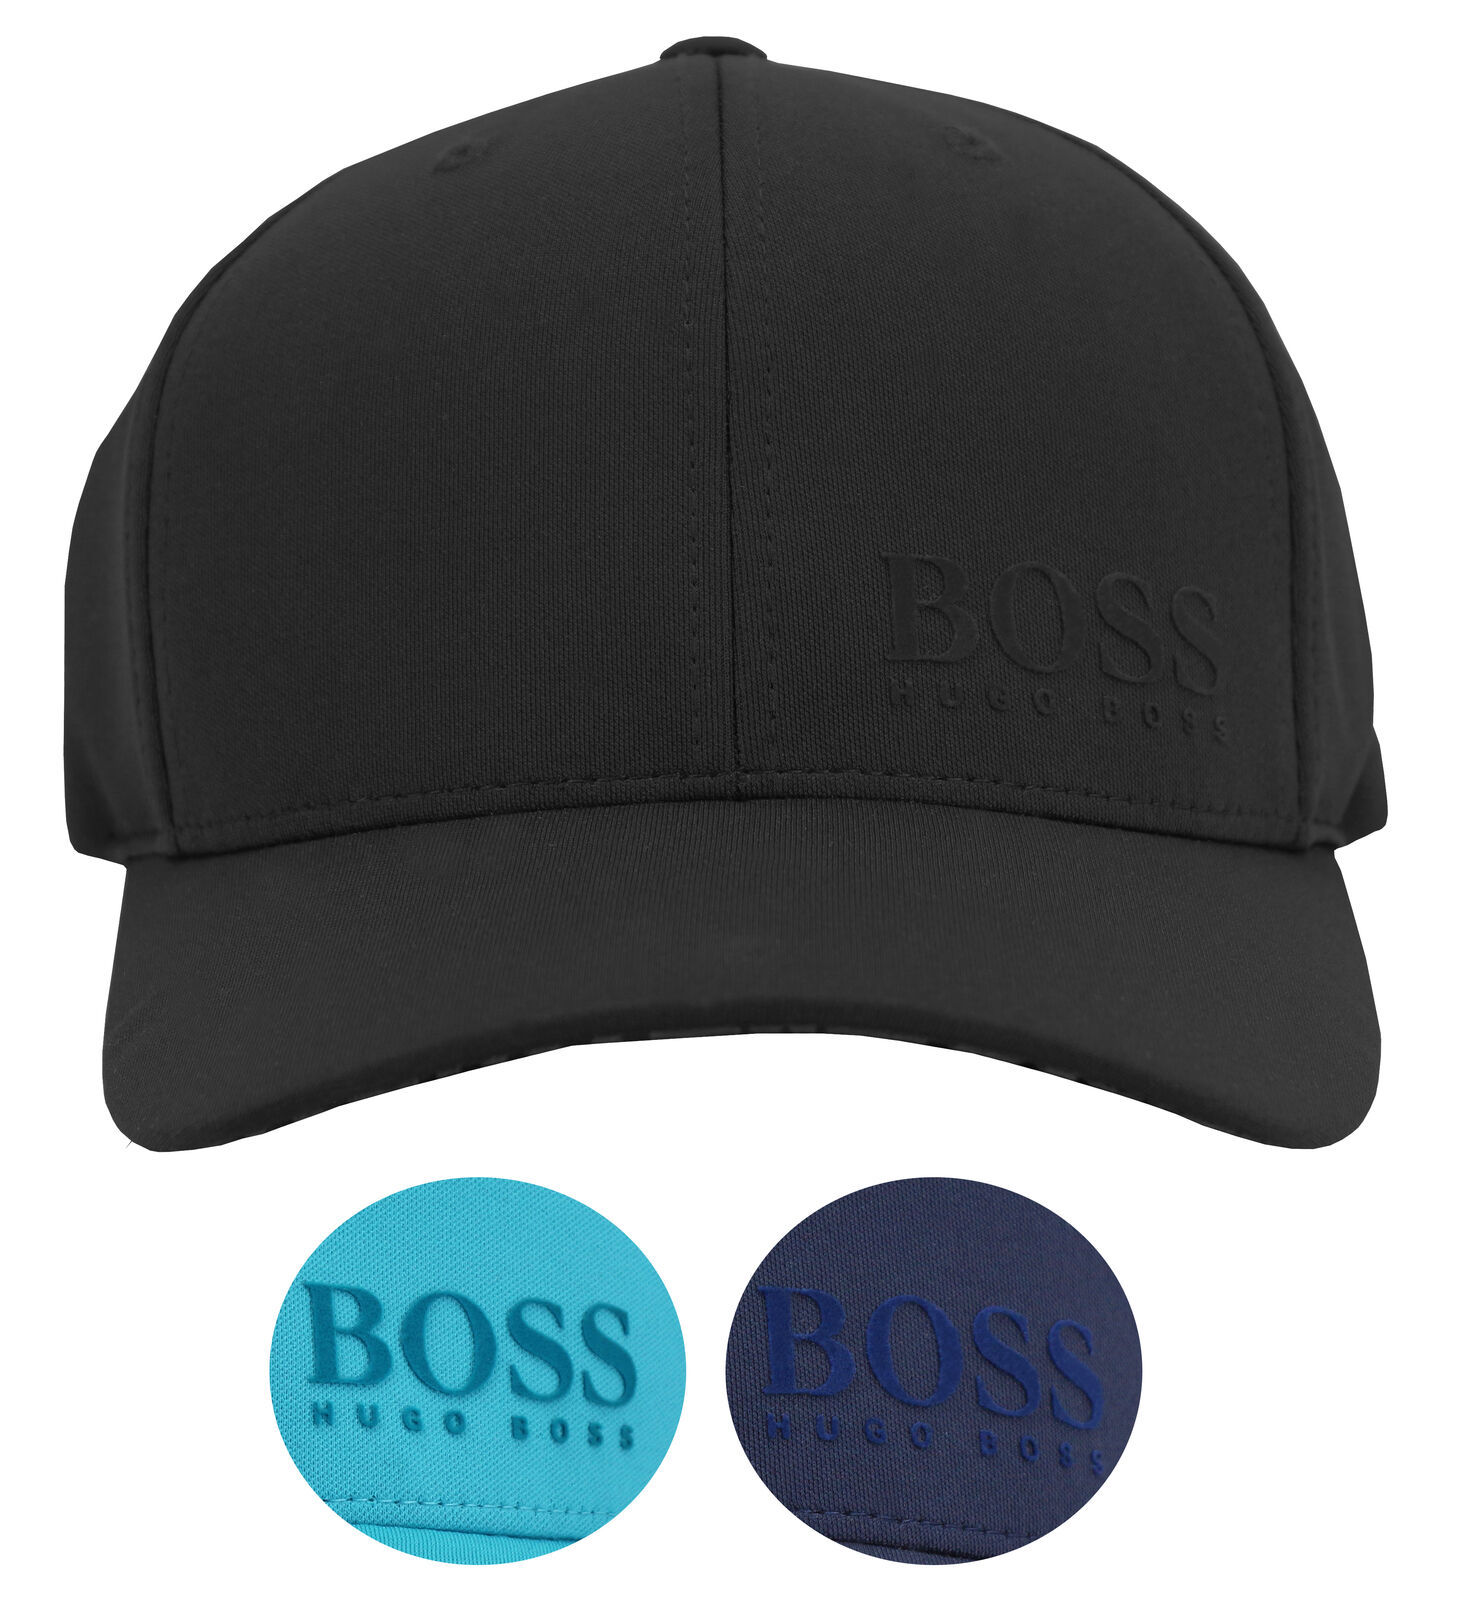 Hugo Boss Men's Breathable Sport Baseball Hat Solid Snapback Cap 50418770